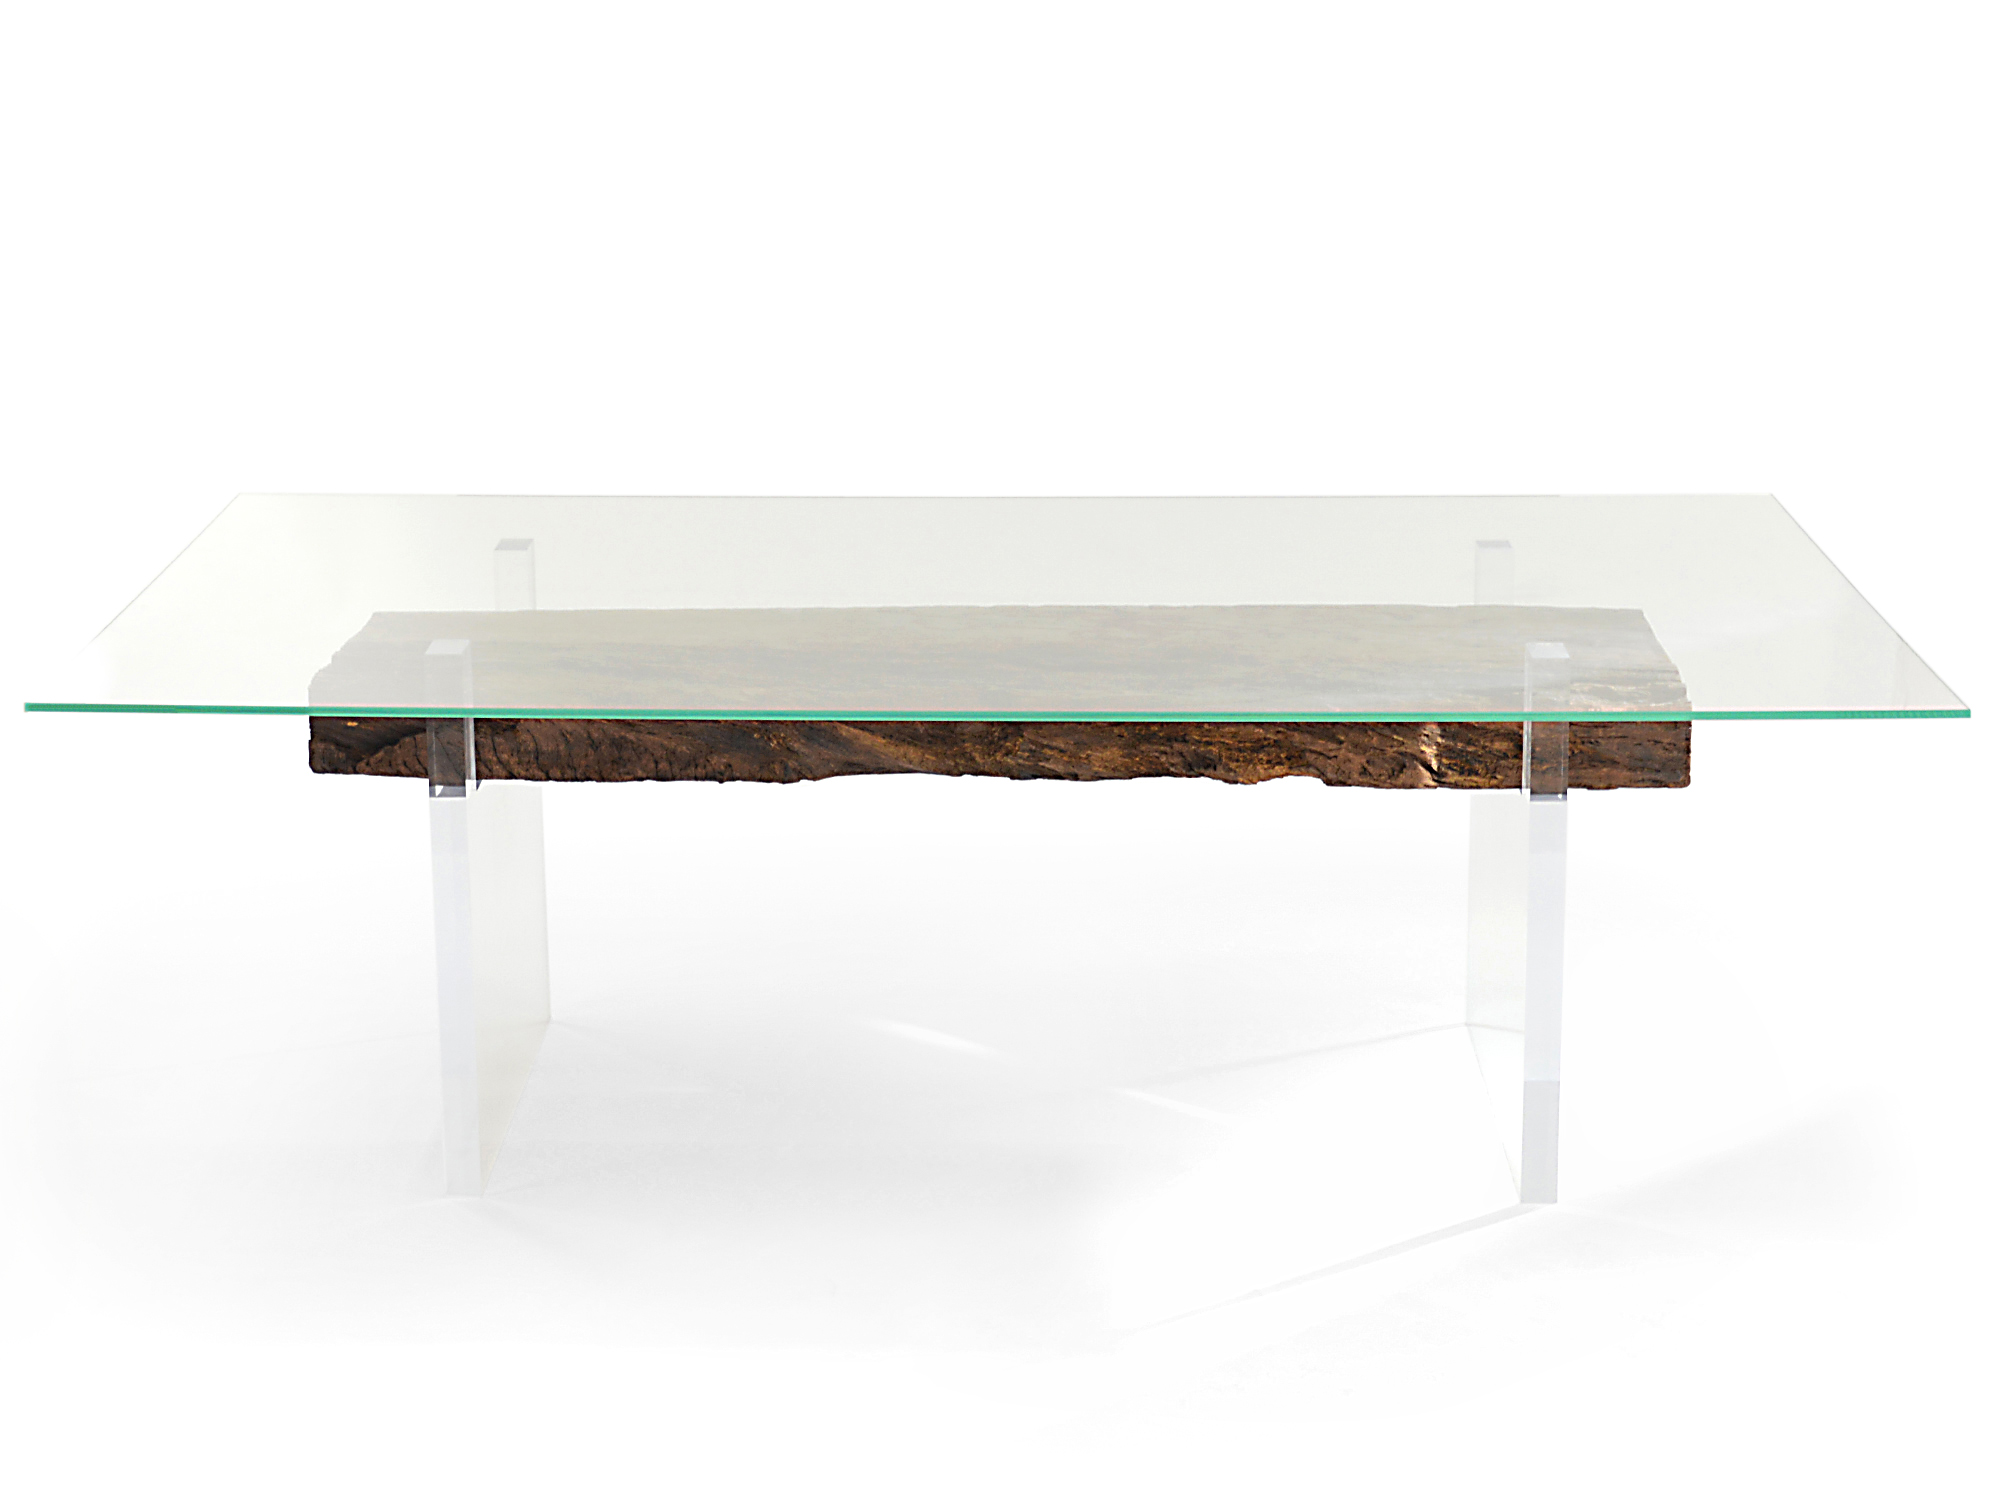 Rotsen-Furniture-Oitis Acrylic Dining Table - Glass Top 07